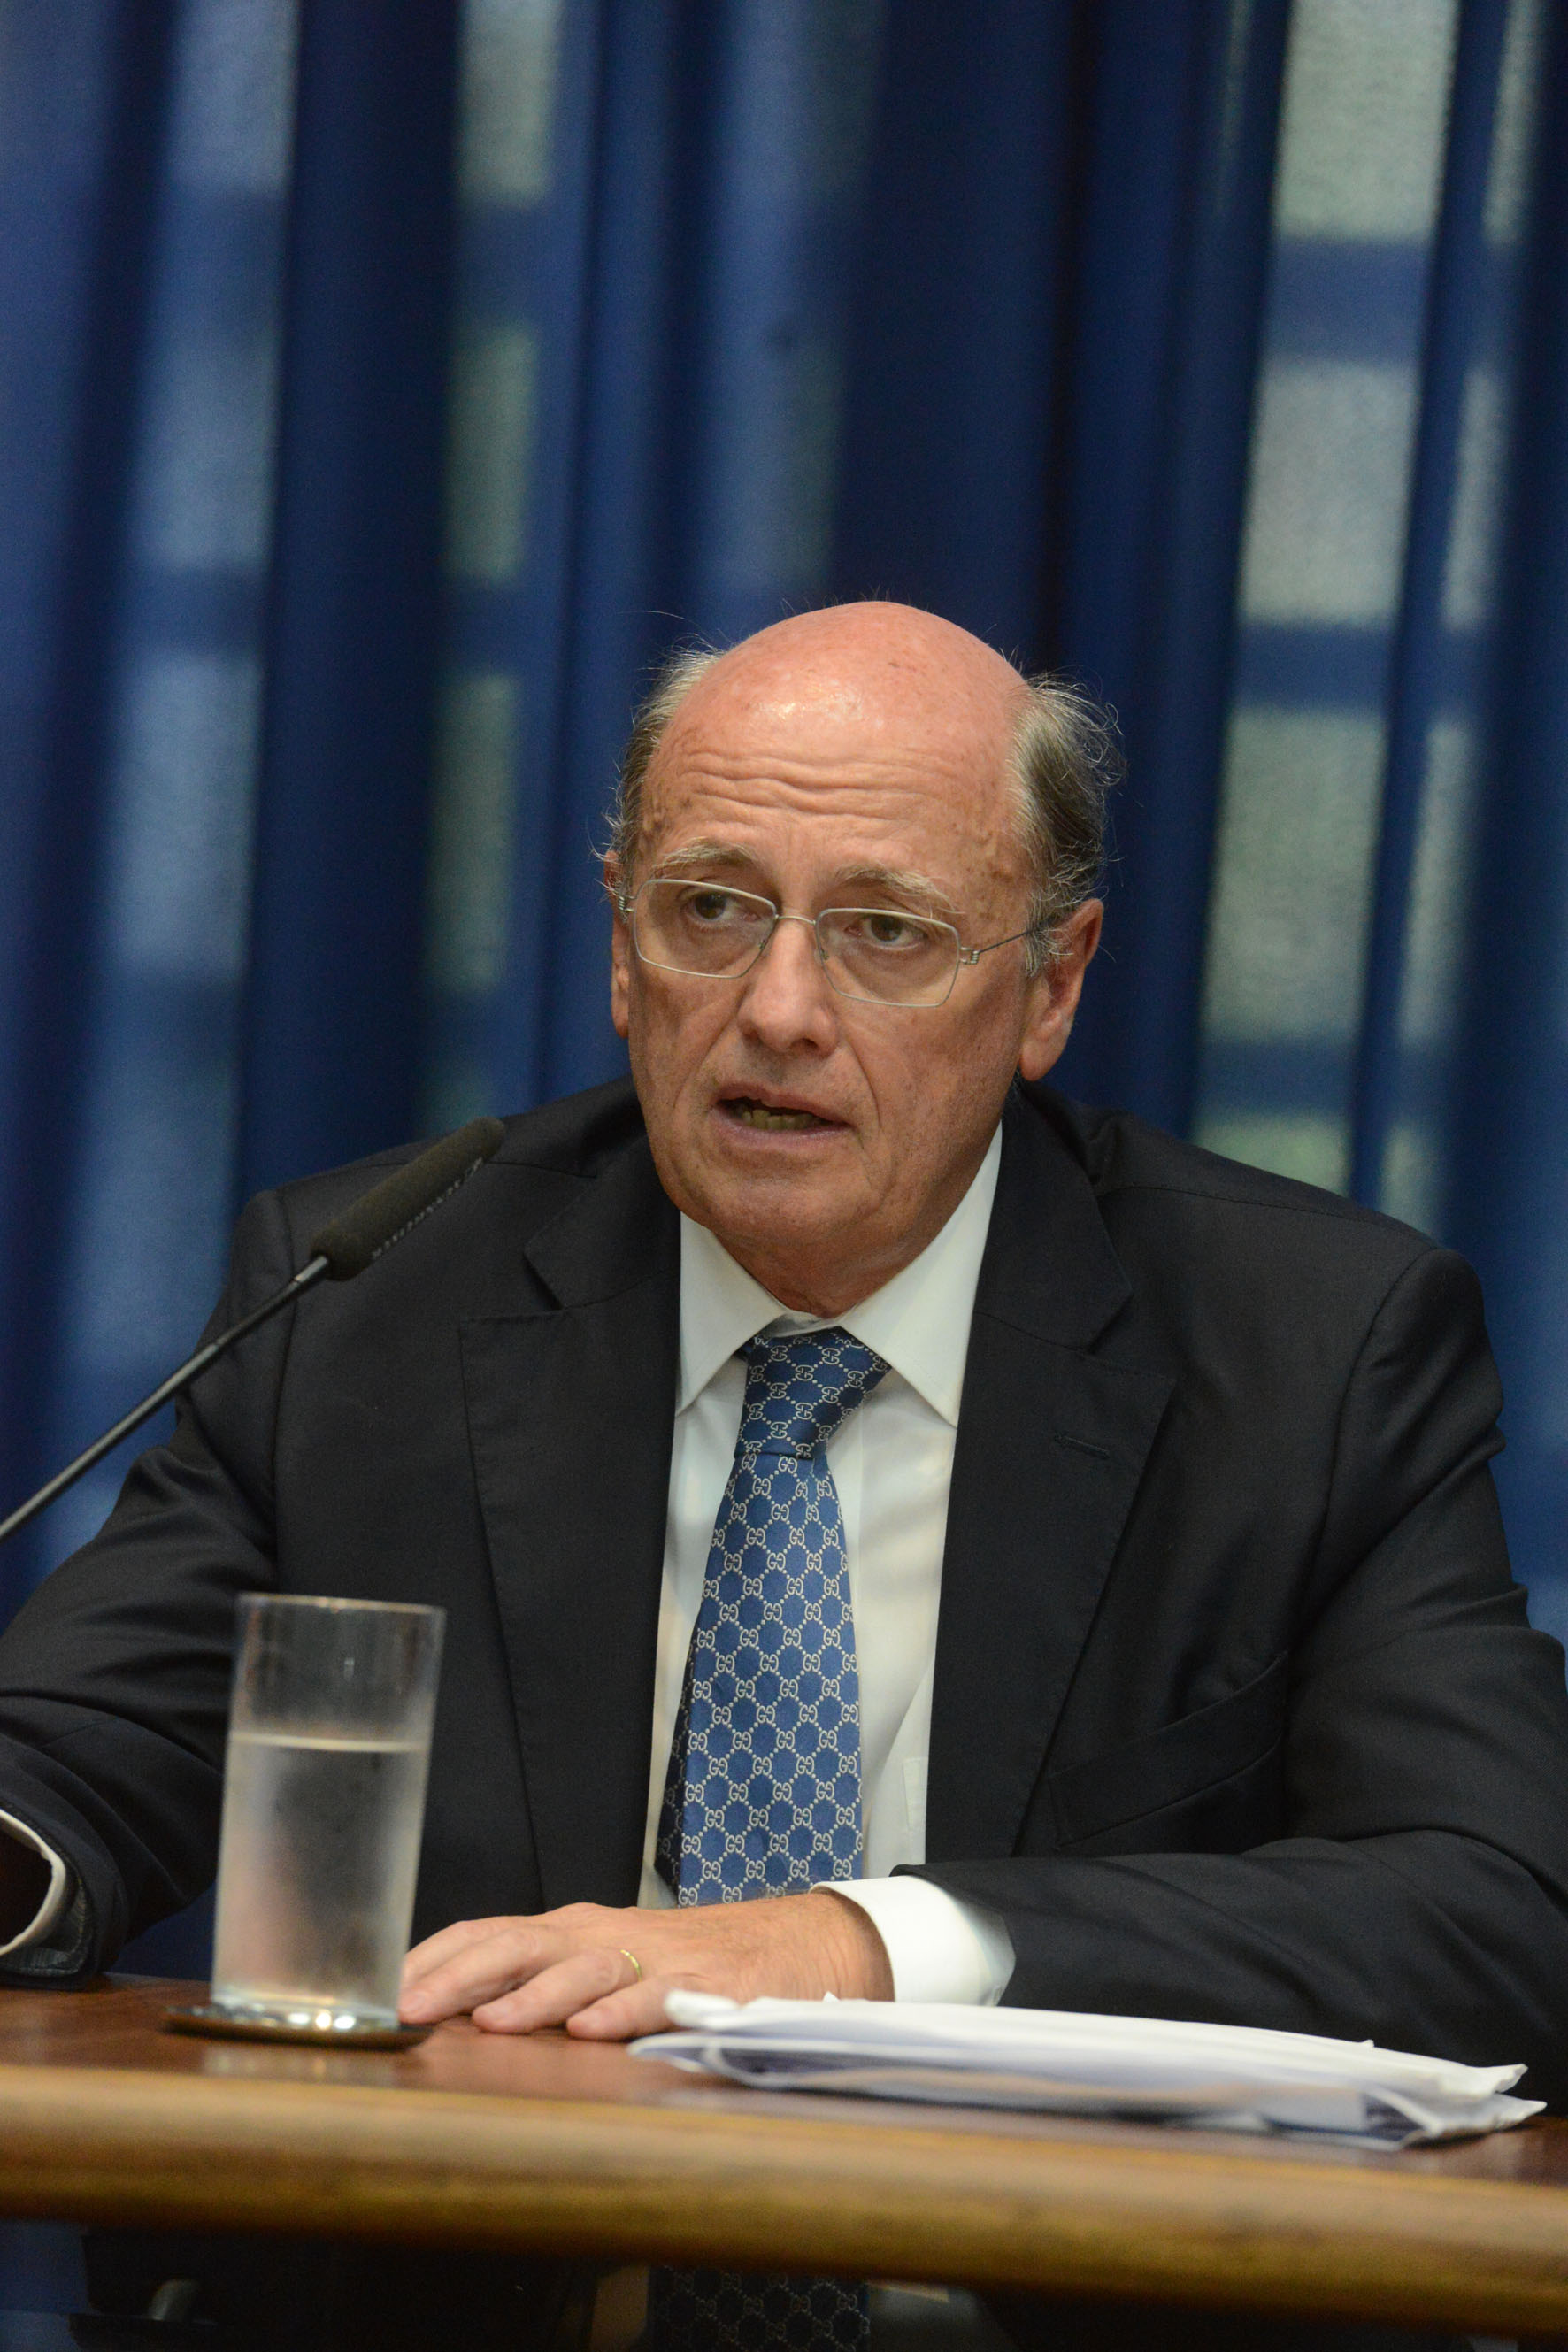 Giovanni Guido Cerri<a style='float:right' href='https://www3.al.sp.gov.br/repositorio/noticia/N-09-2019/fg239955.jpg' target=_blank><img src='/_img/material-file-download-white.png' width='14px' alt='Clique para baixar a imagem'></a>